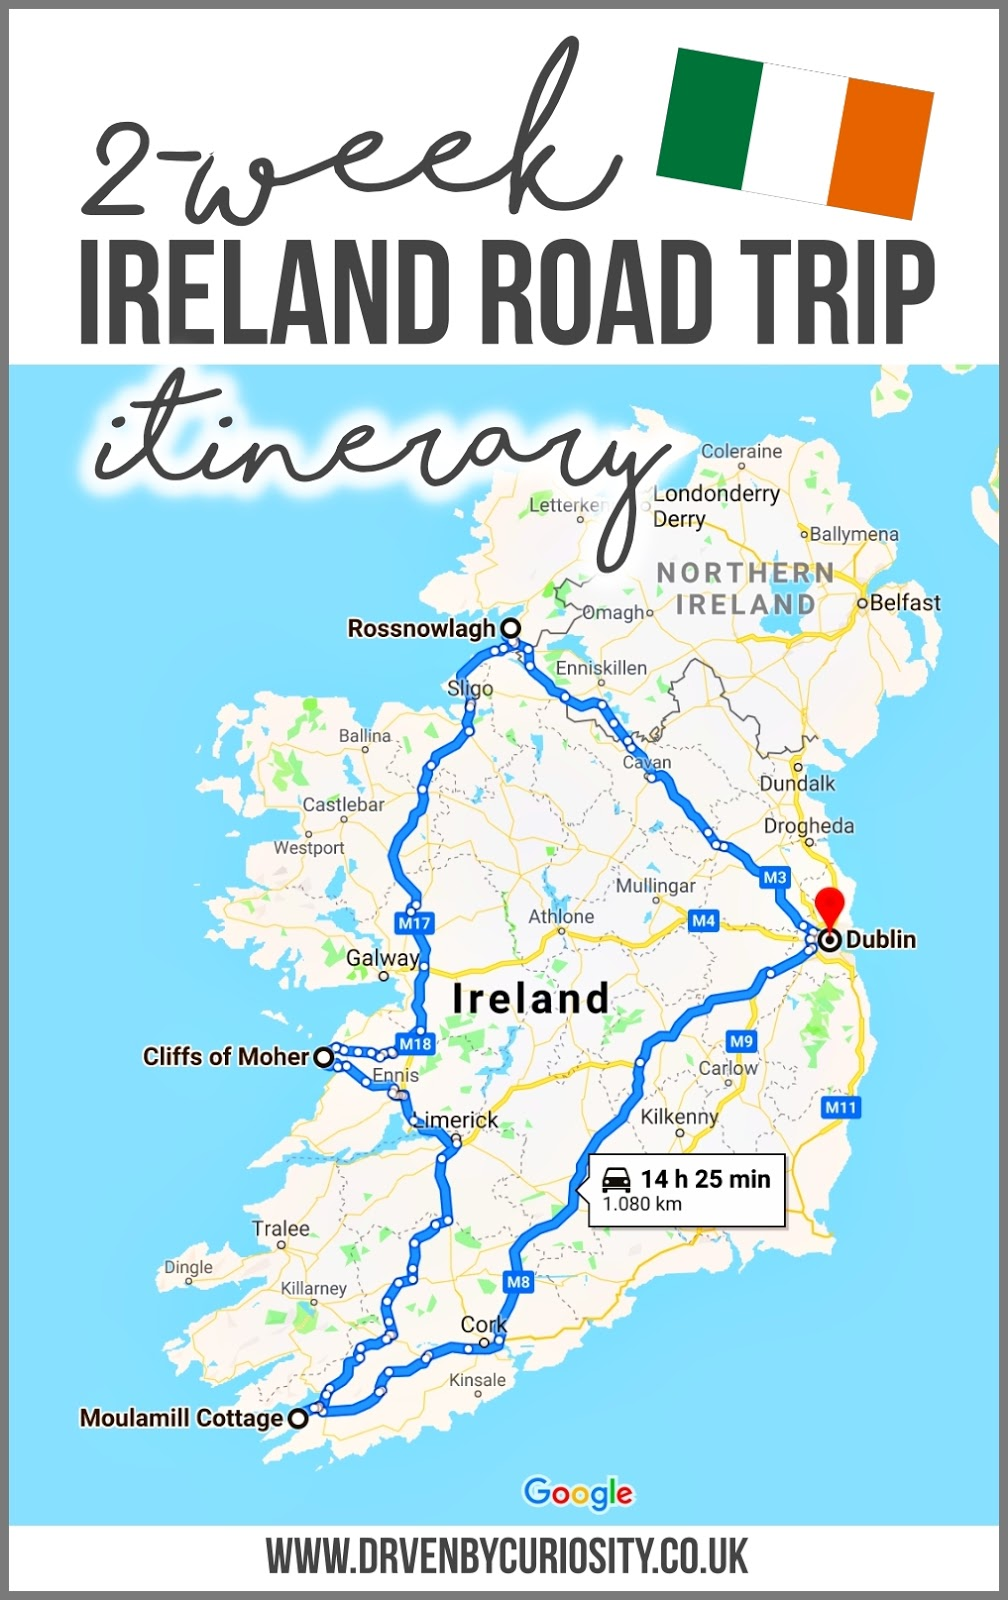 2 week ireland road trip itinerary map